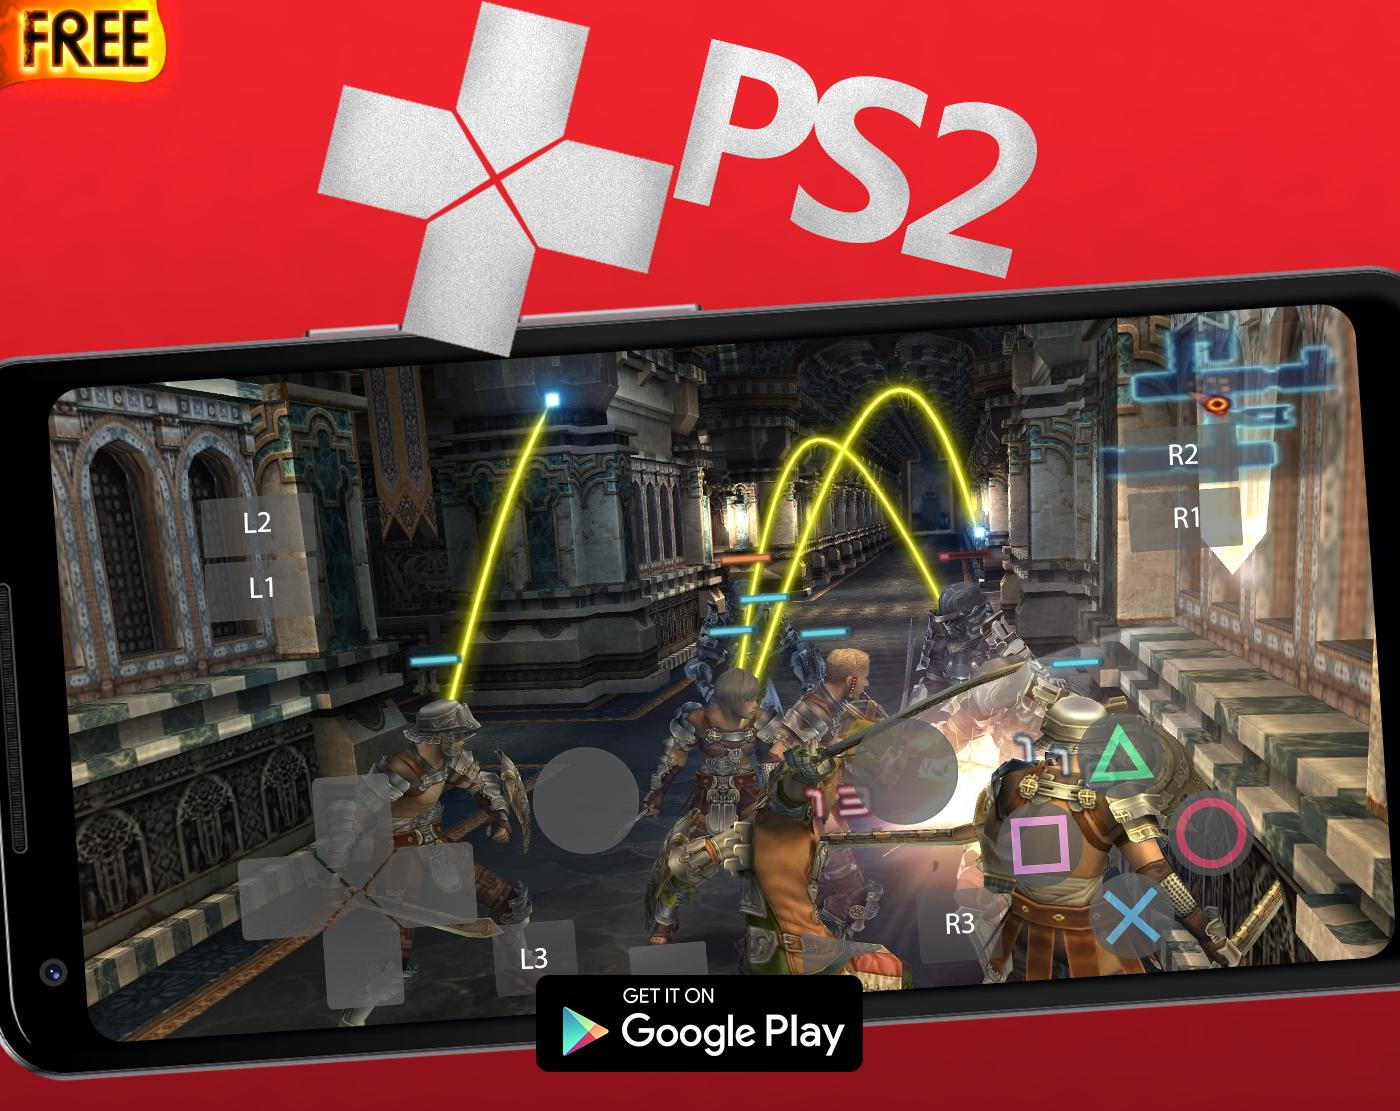 Play playstation 2 emulator for android download apk | Play